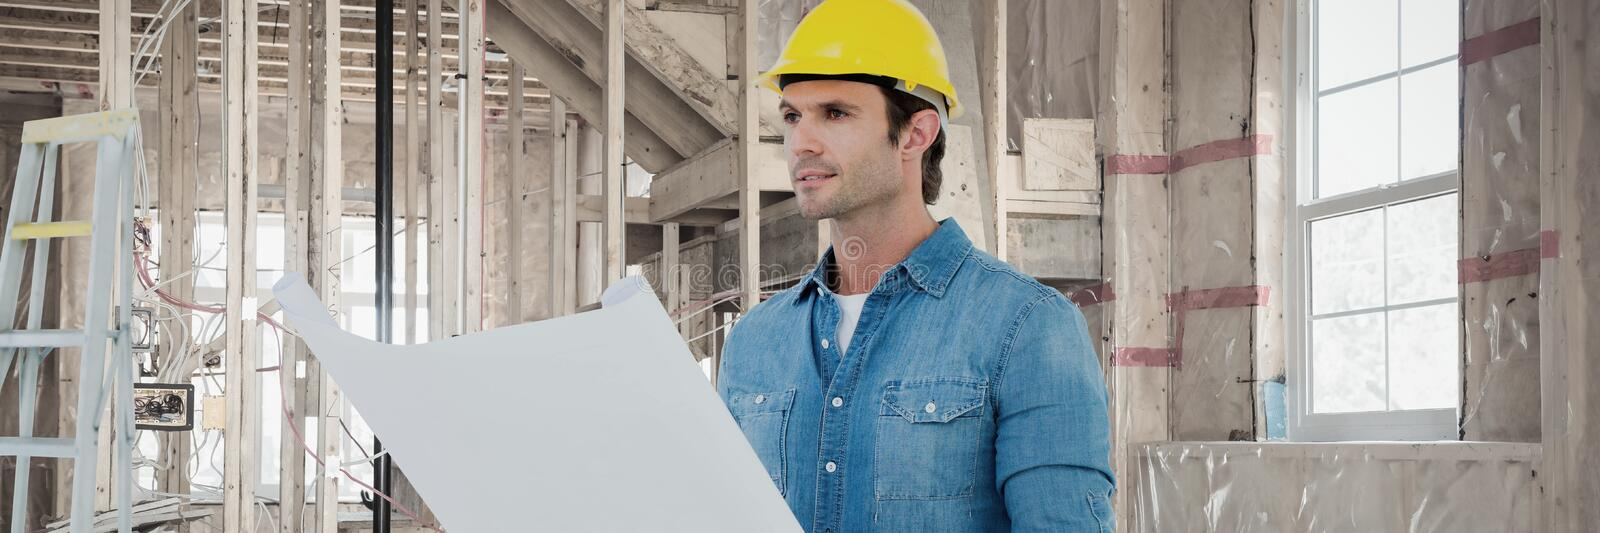 Composed image of construction worker looking at plans stock photo